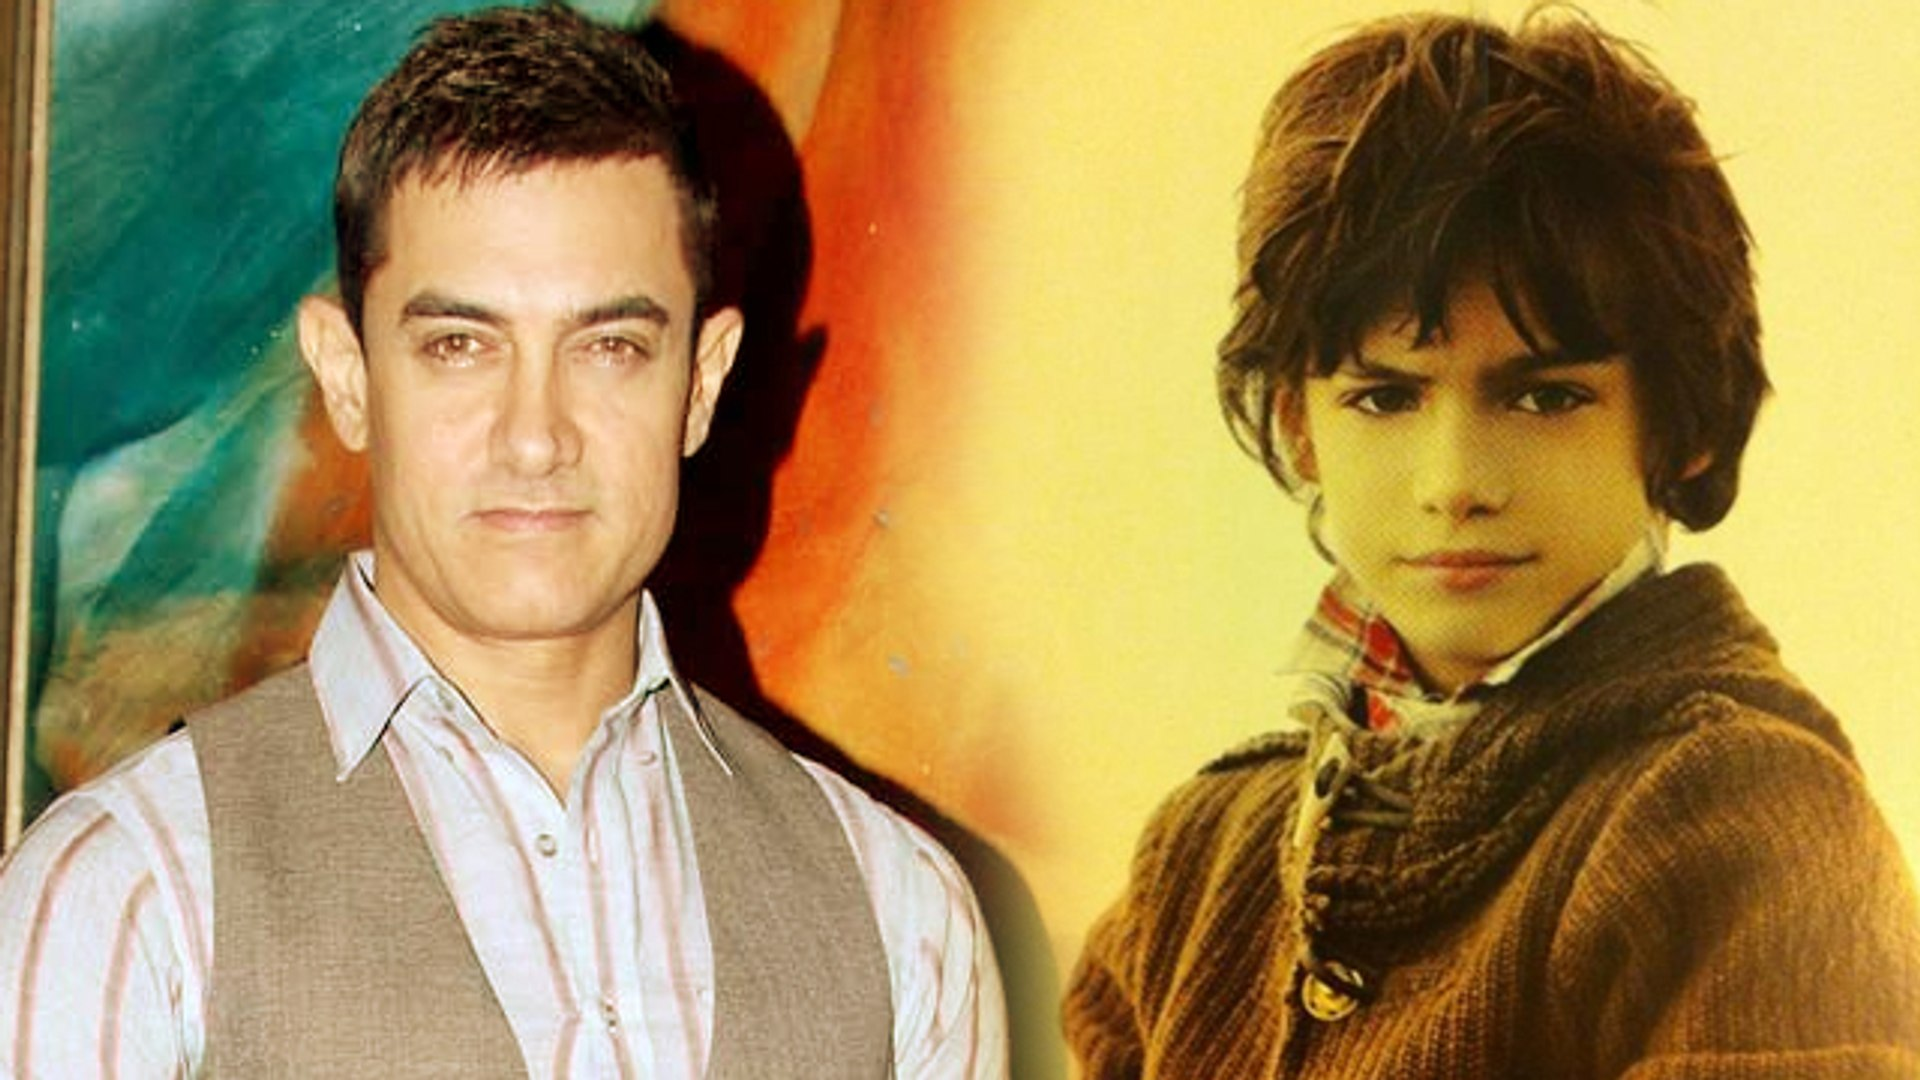 Aamir Khan's history in company of jihadis surfaces on Twitter